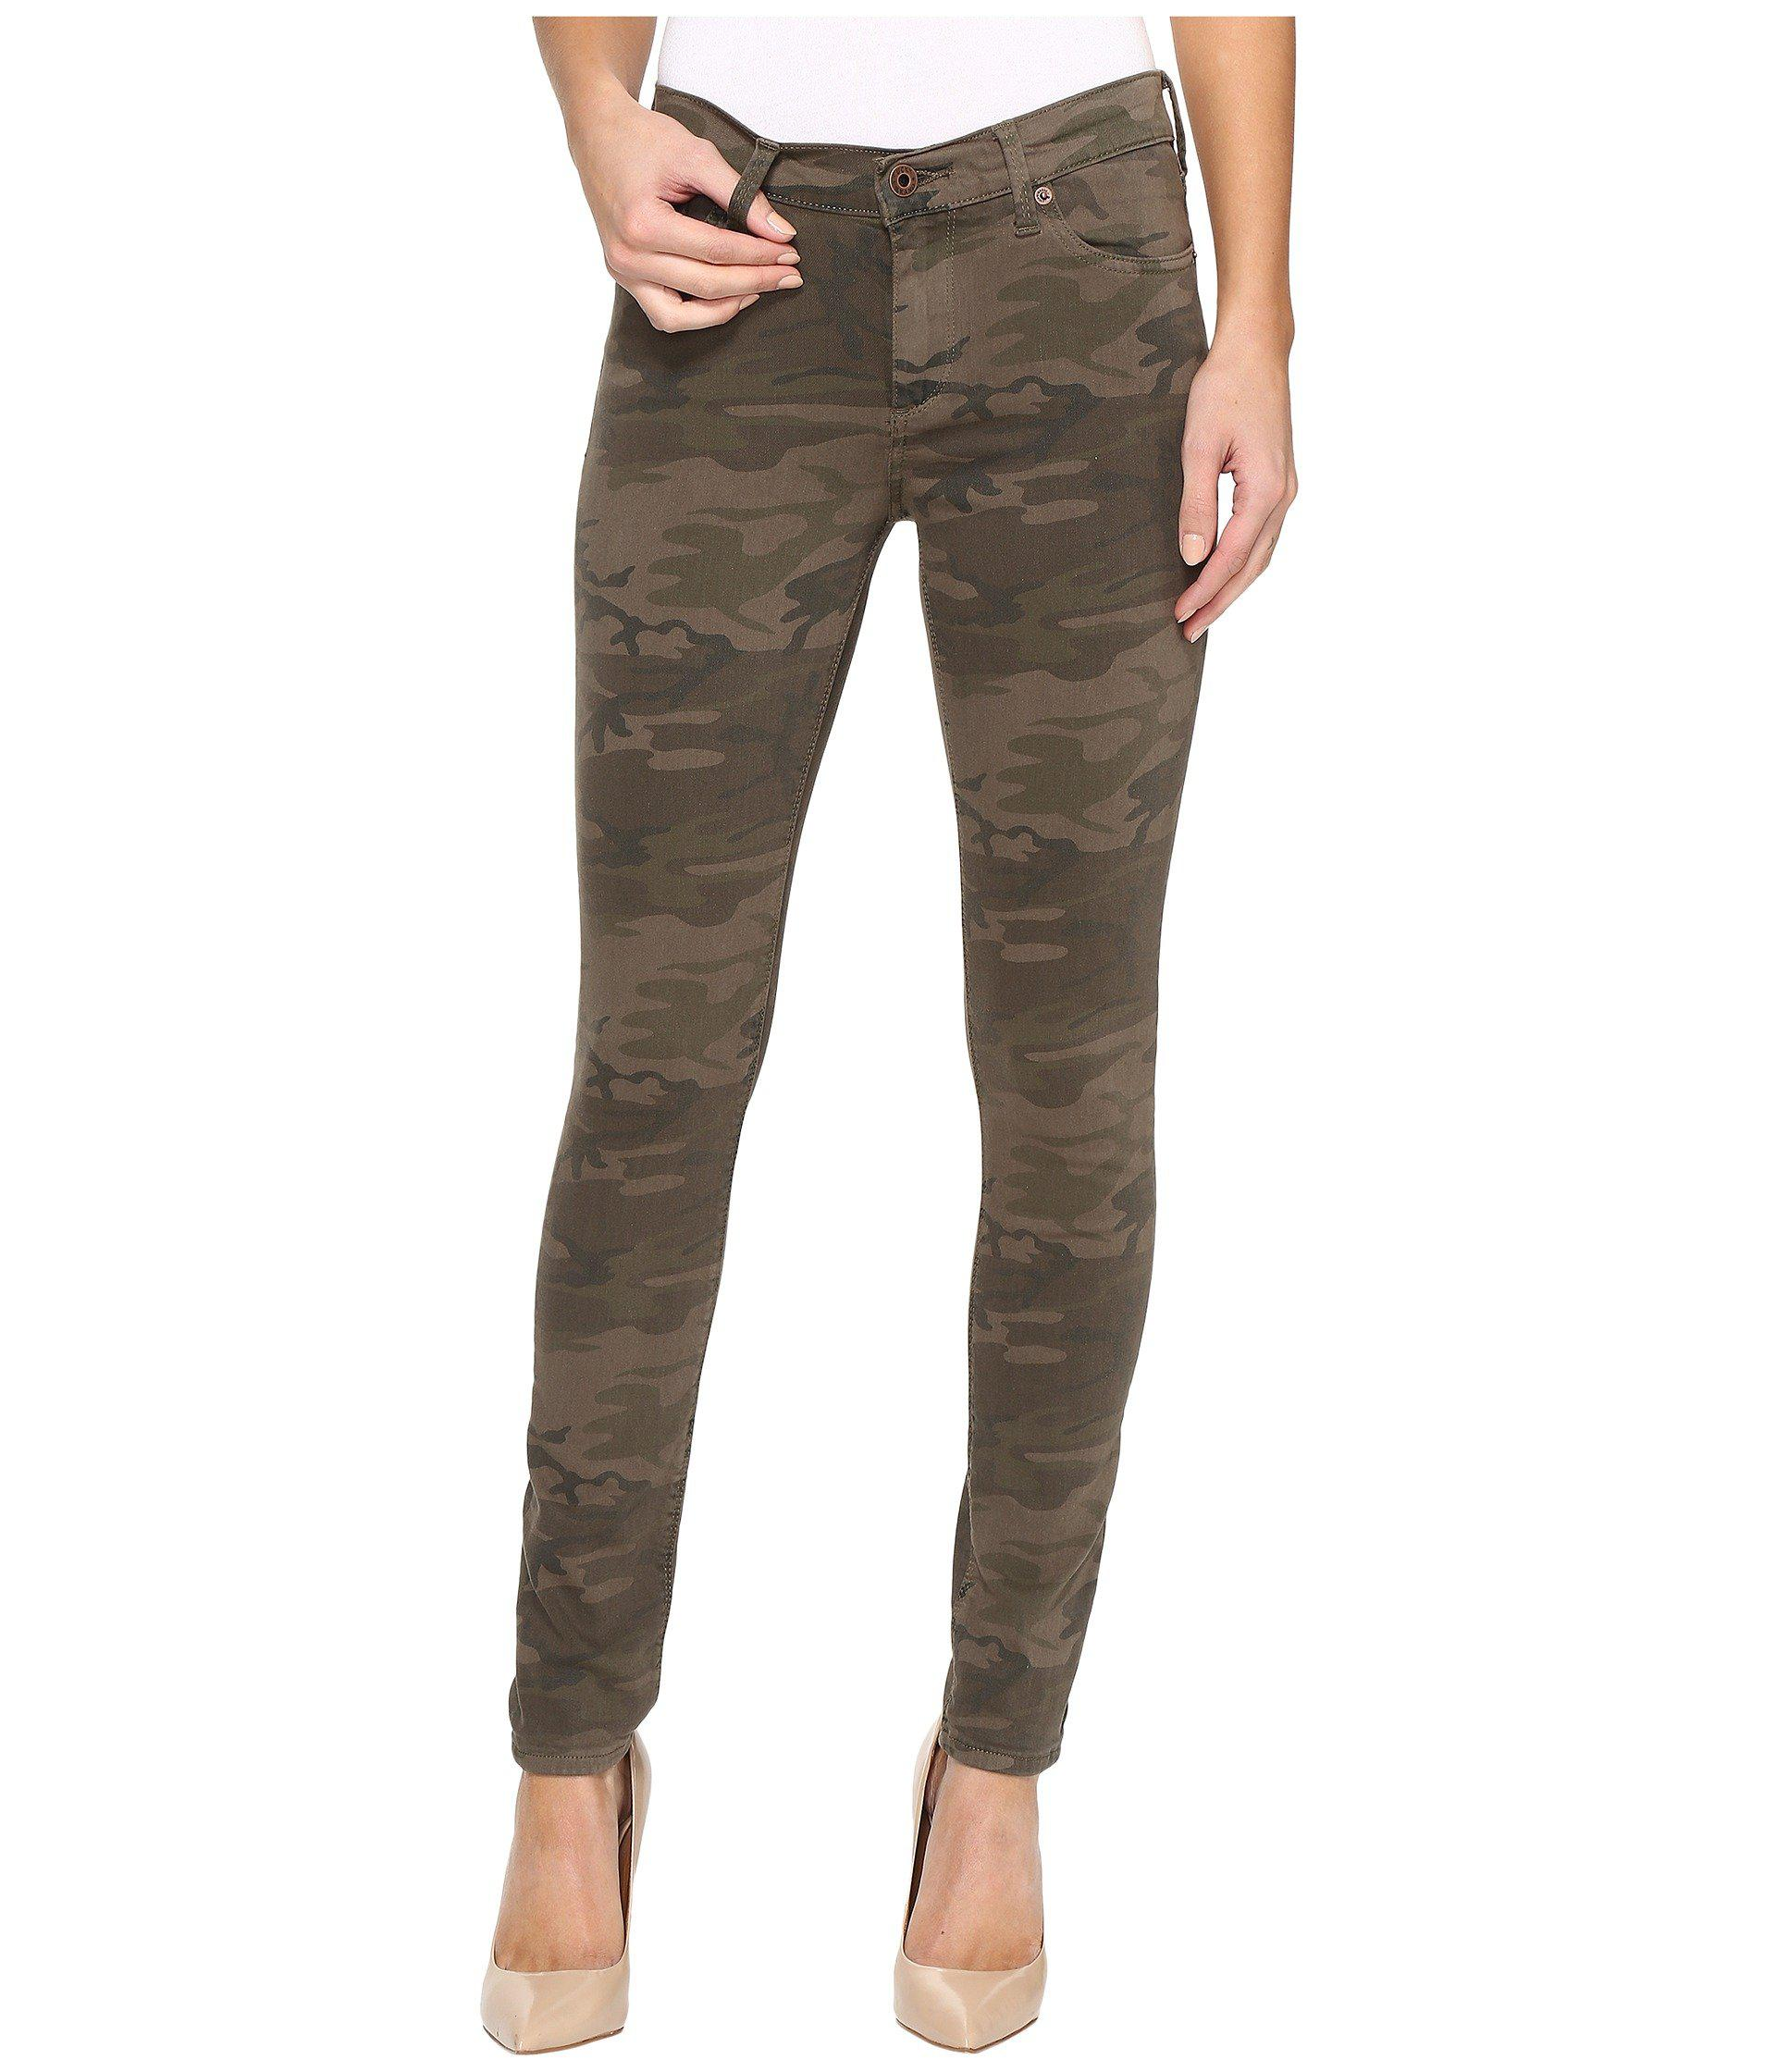 f4e266917bc2d Lucky Brand Brooke Legging Jeans In Jagged Camo in Green - Lyst